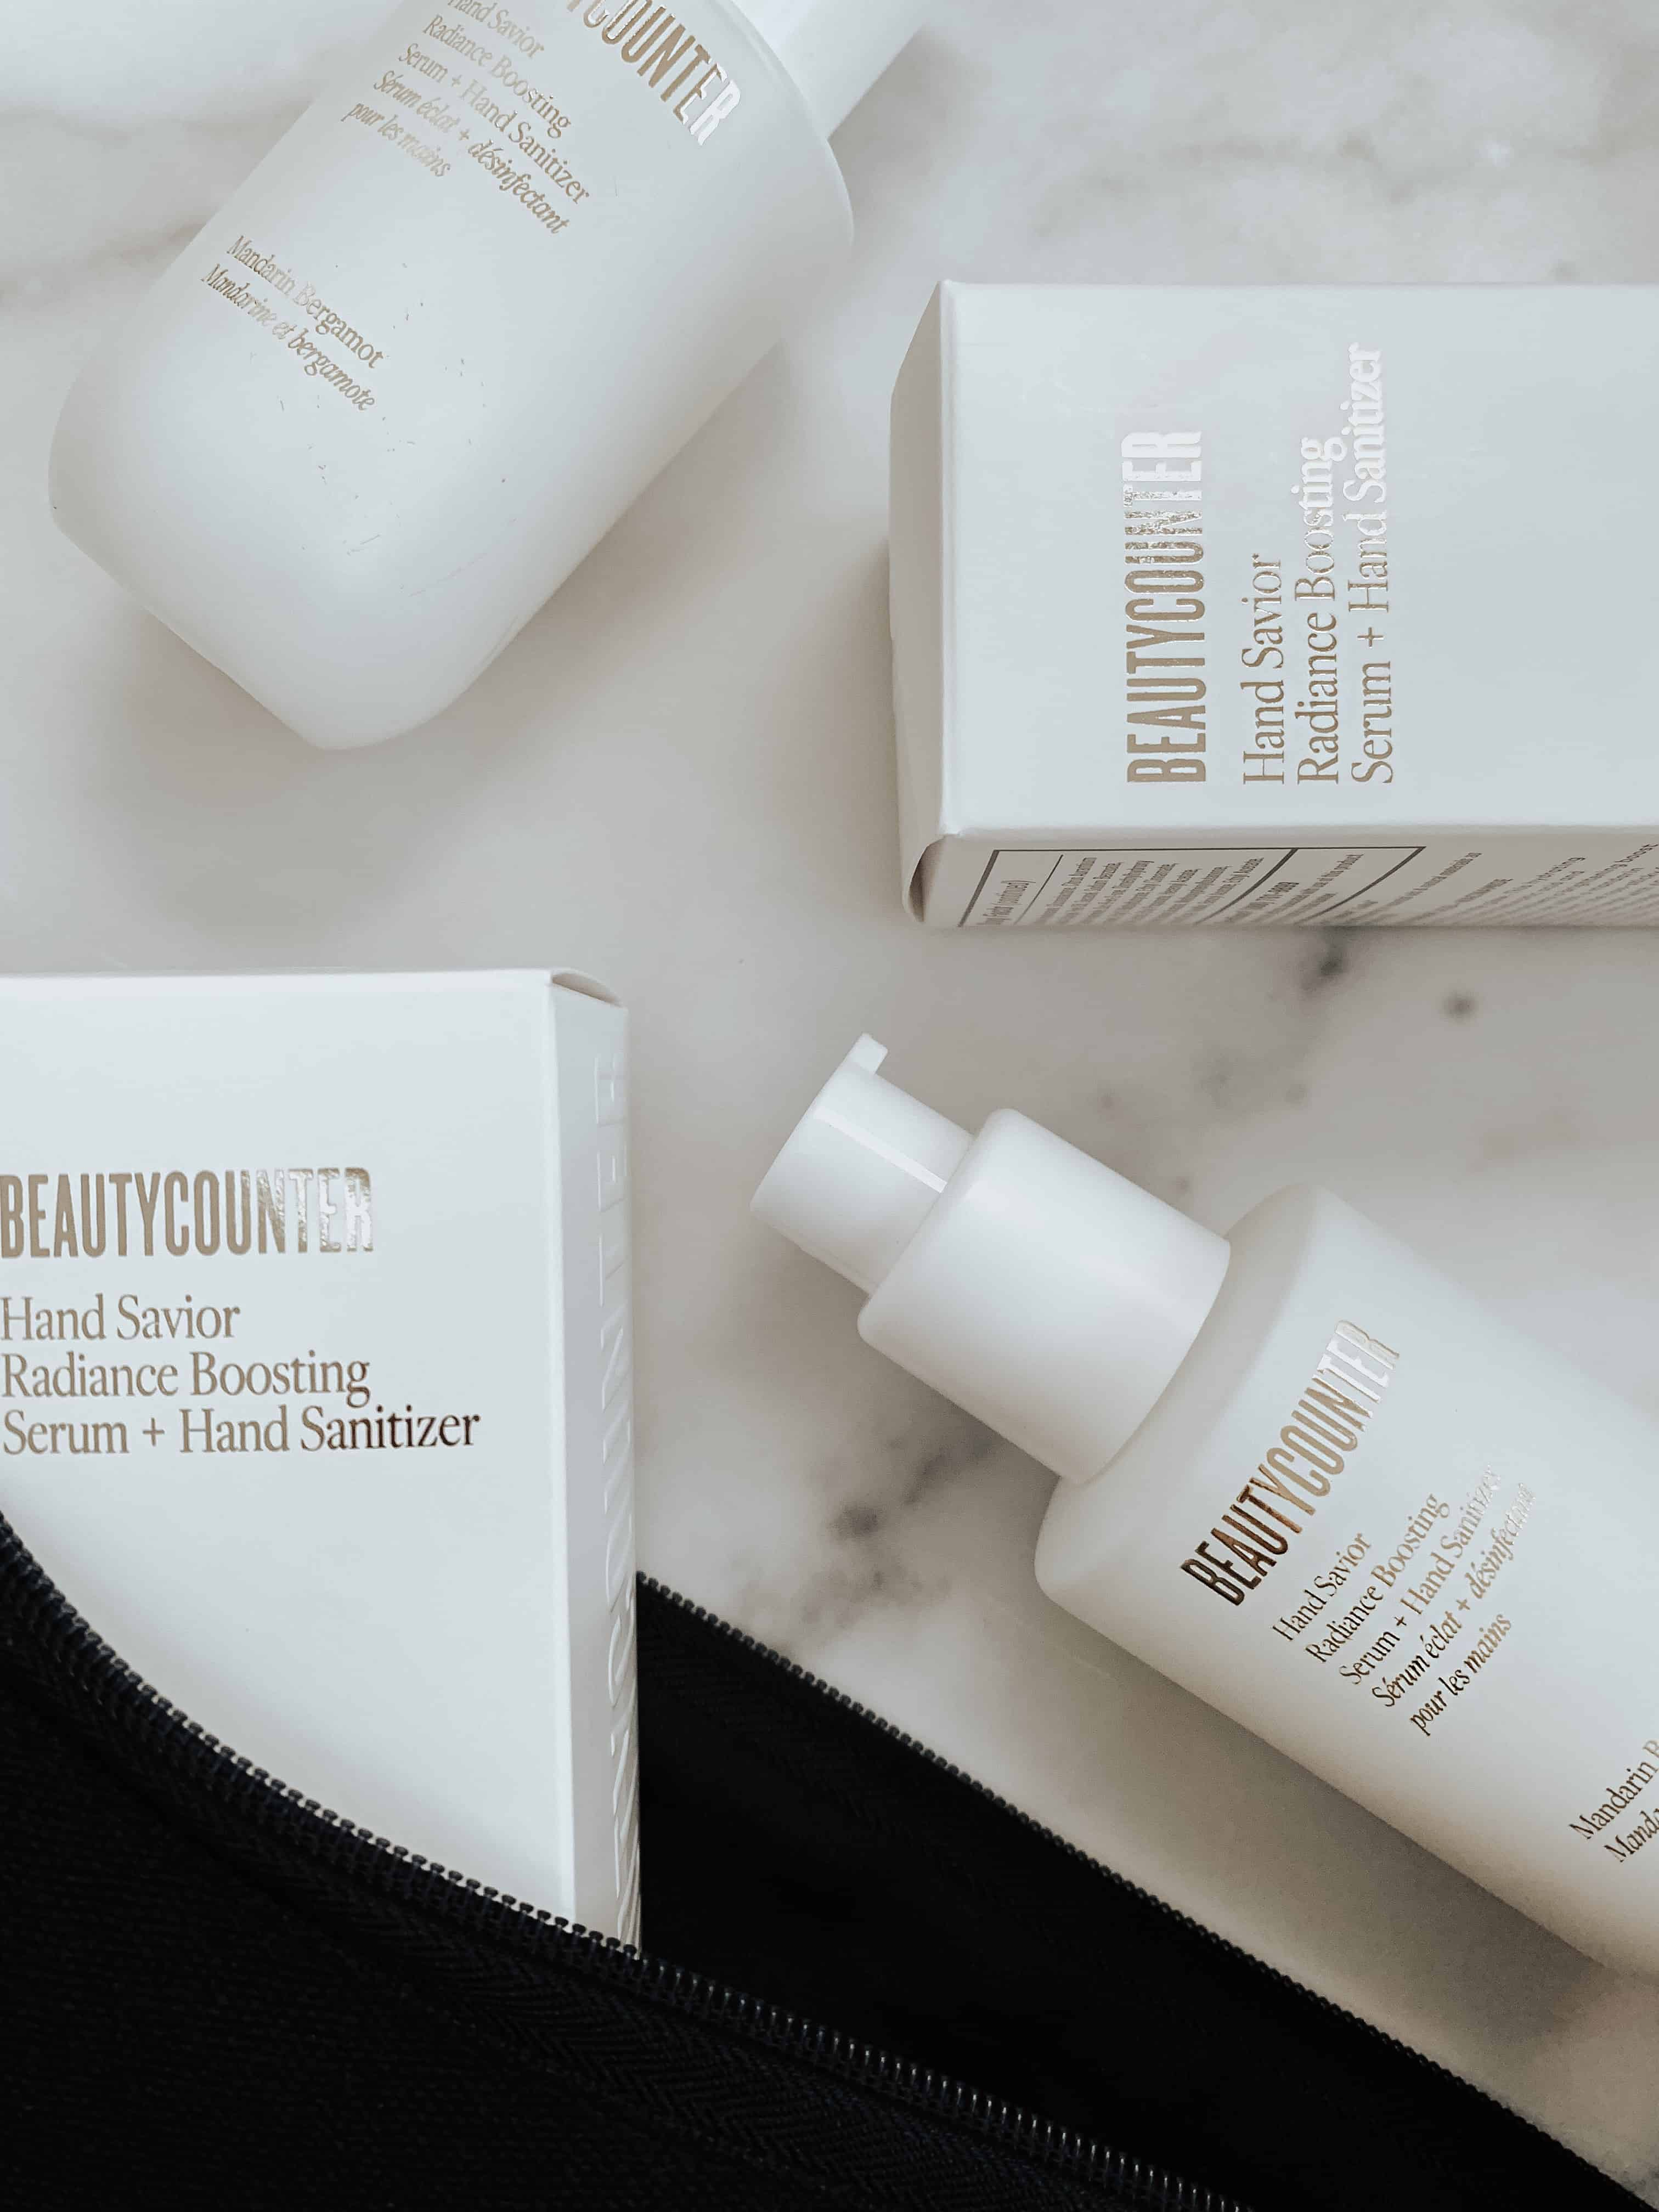 Two sets of Beautycounter's new Hand Savior Radiance Serum + Hand Sanitizer bottle and product packaging on a marble surface.